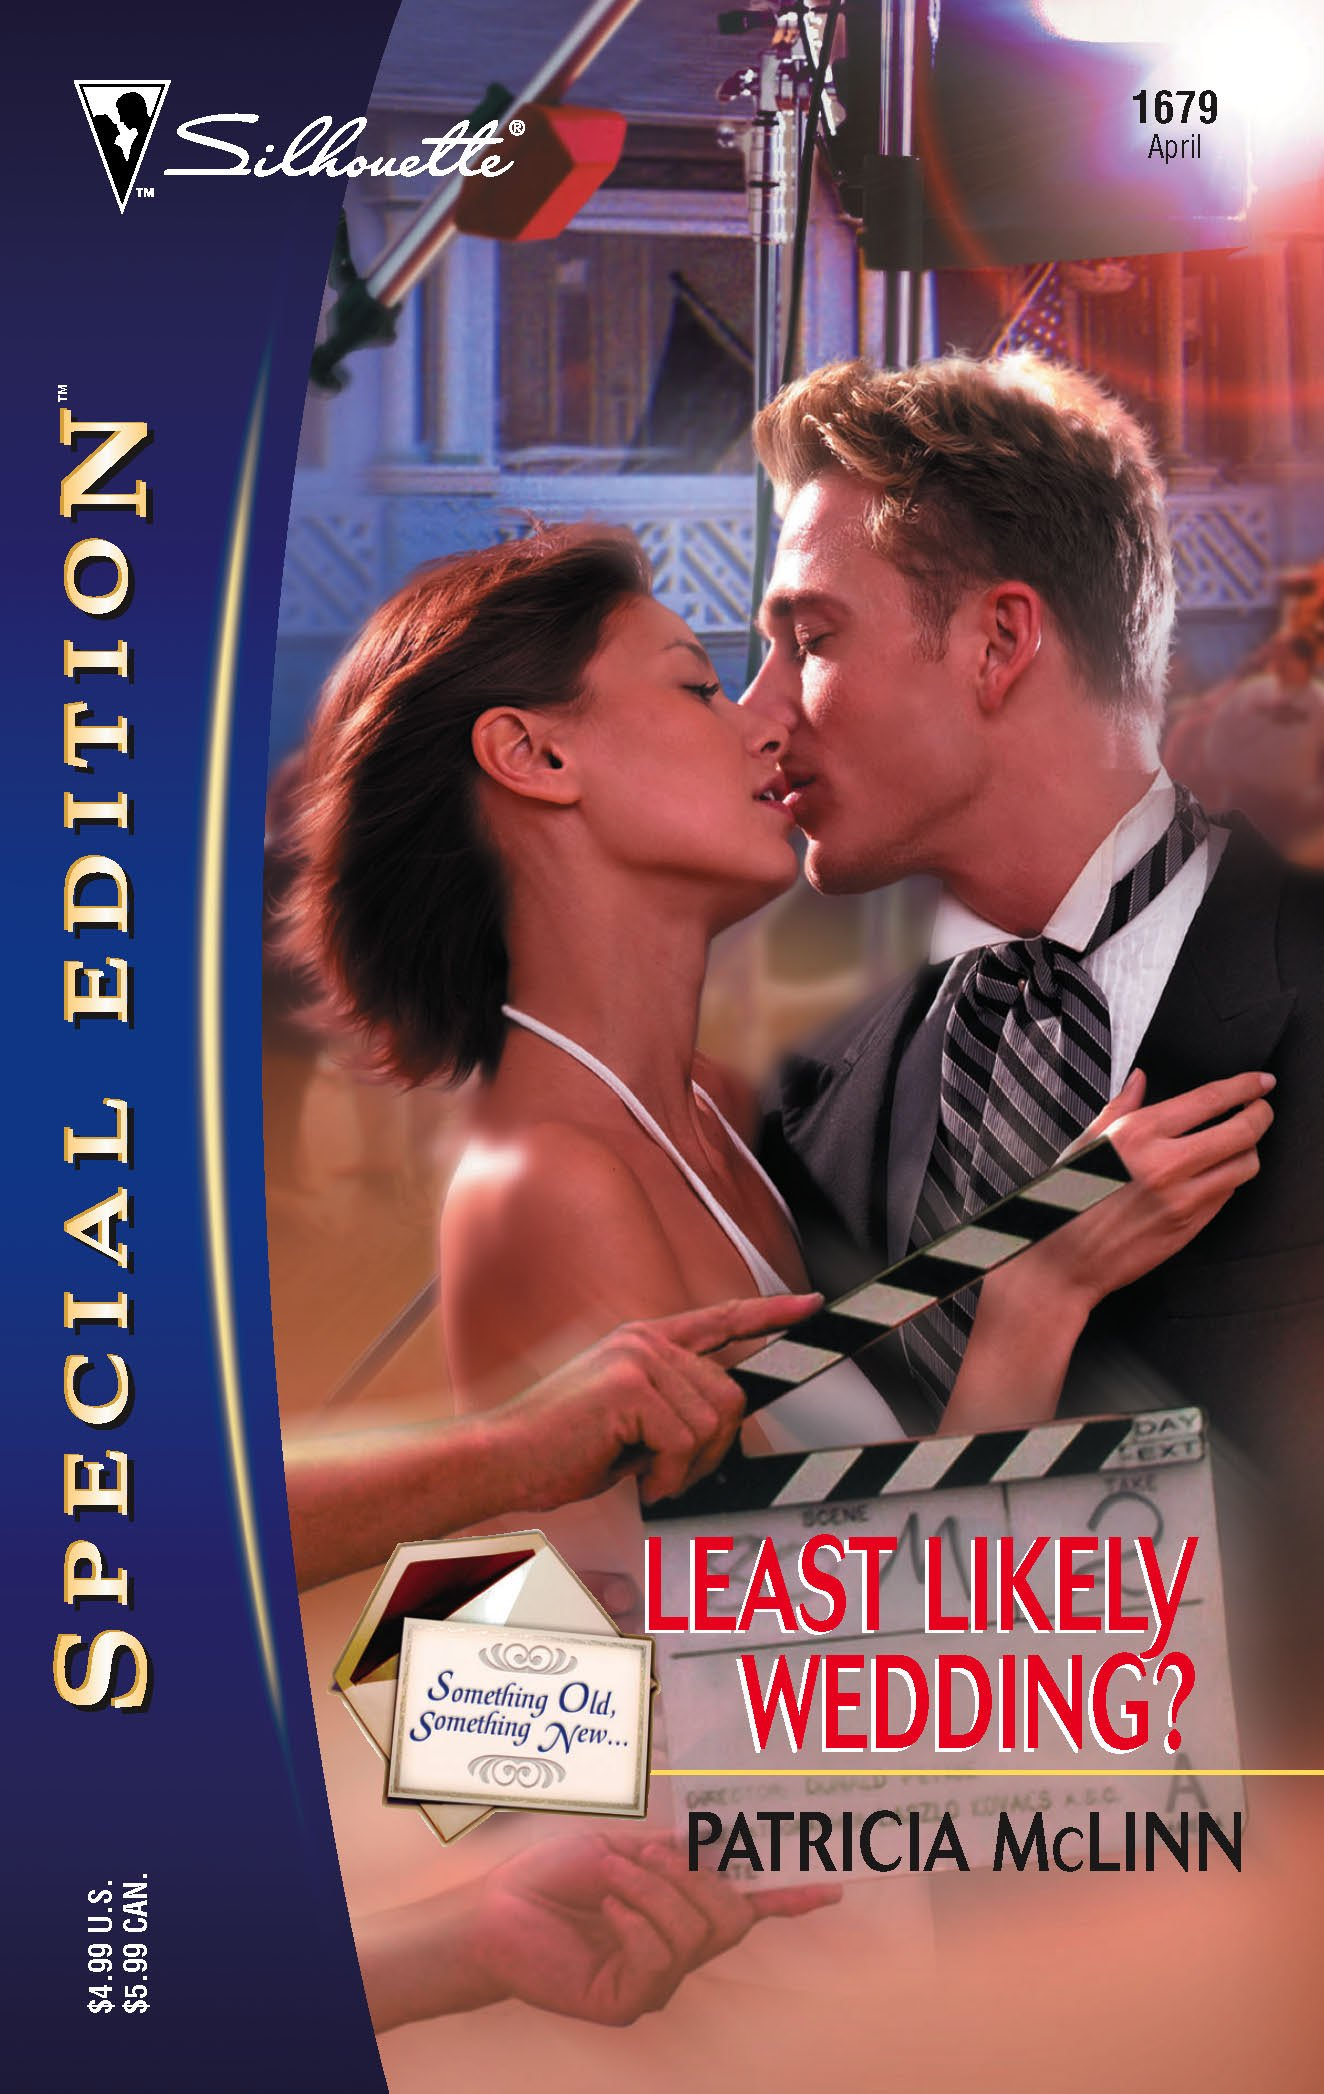 Read Online Least Likely Wedding? (Something Old, Something New...) pdf